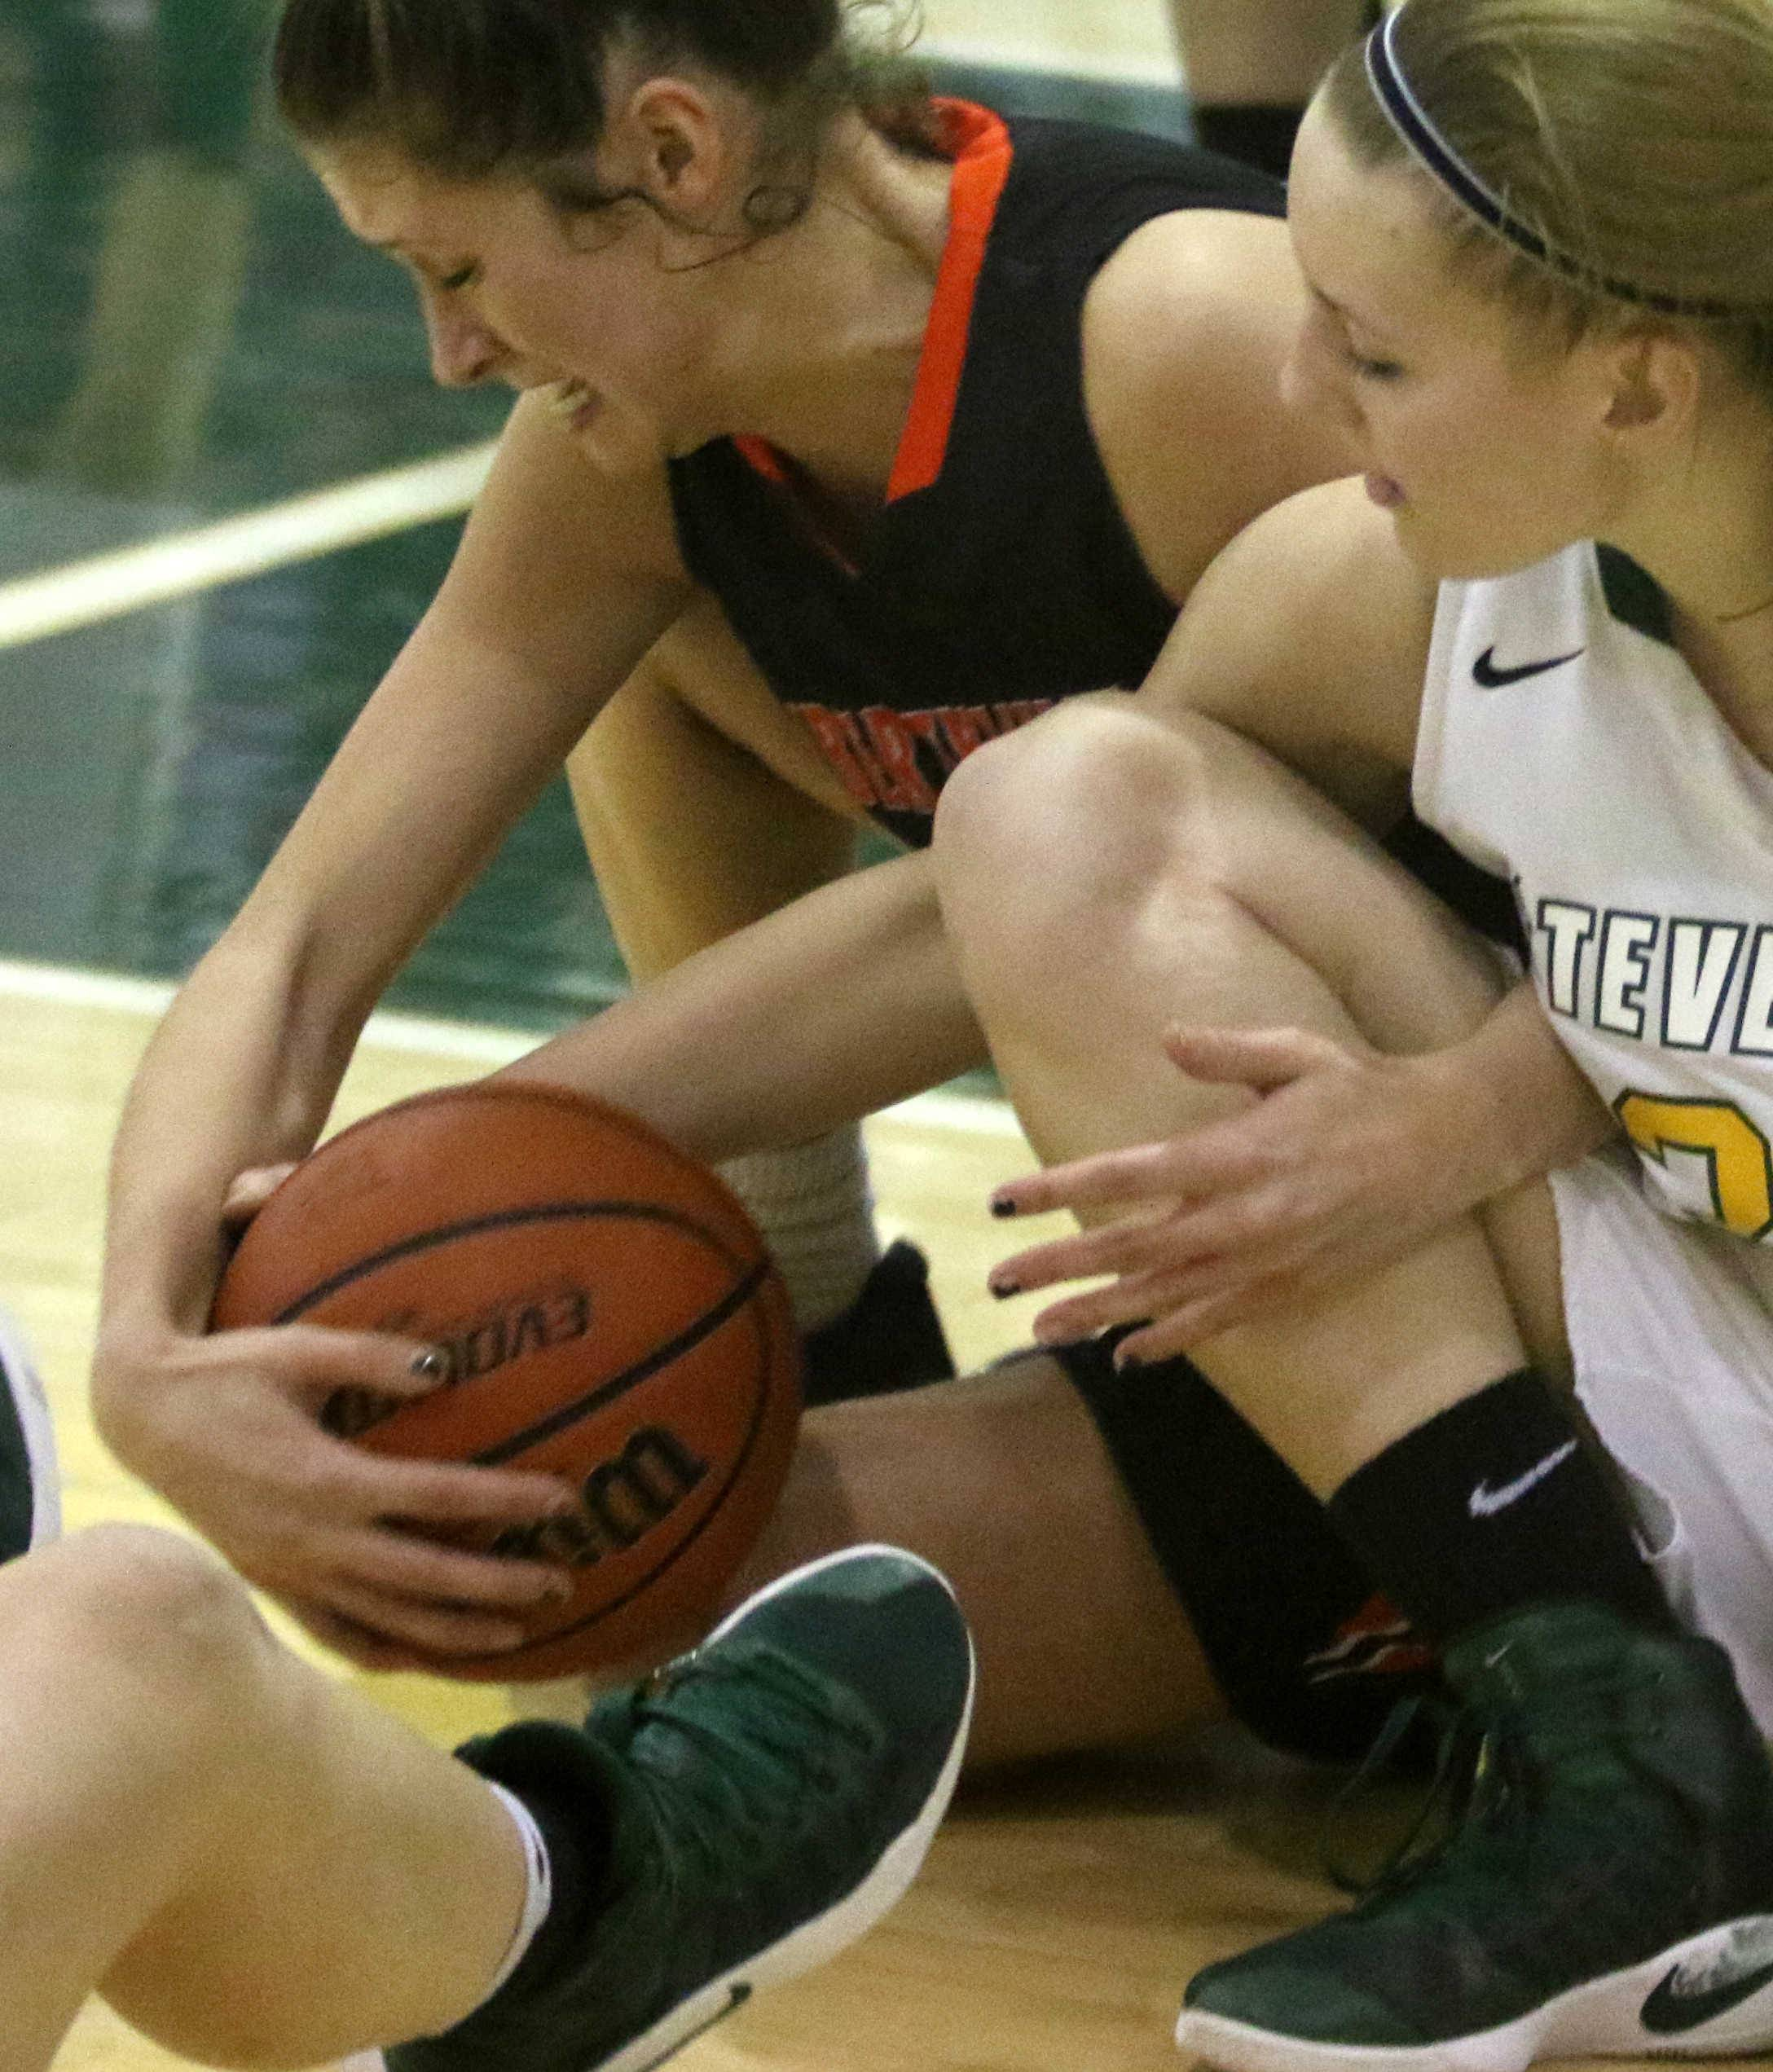 Libertyville's Claire Keefe, left, and Stevenson's Madison Wicklund battle for the ball during Class 4A regional title game action at Stevenson.